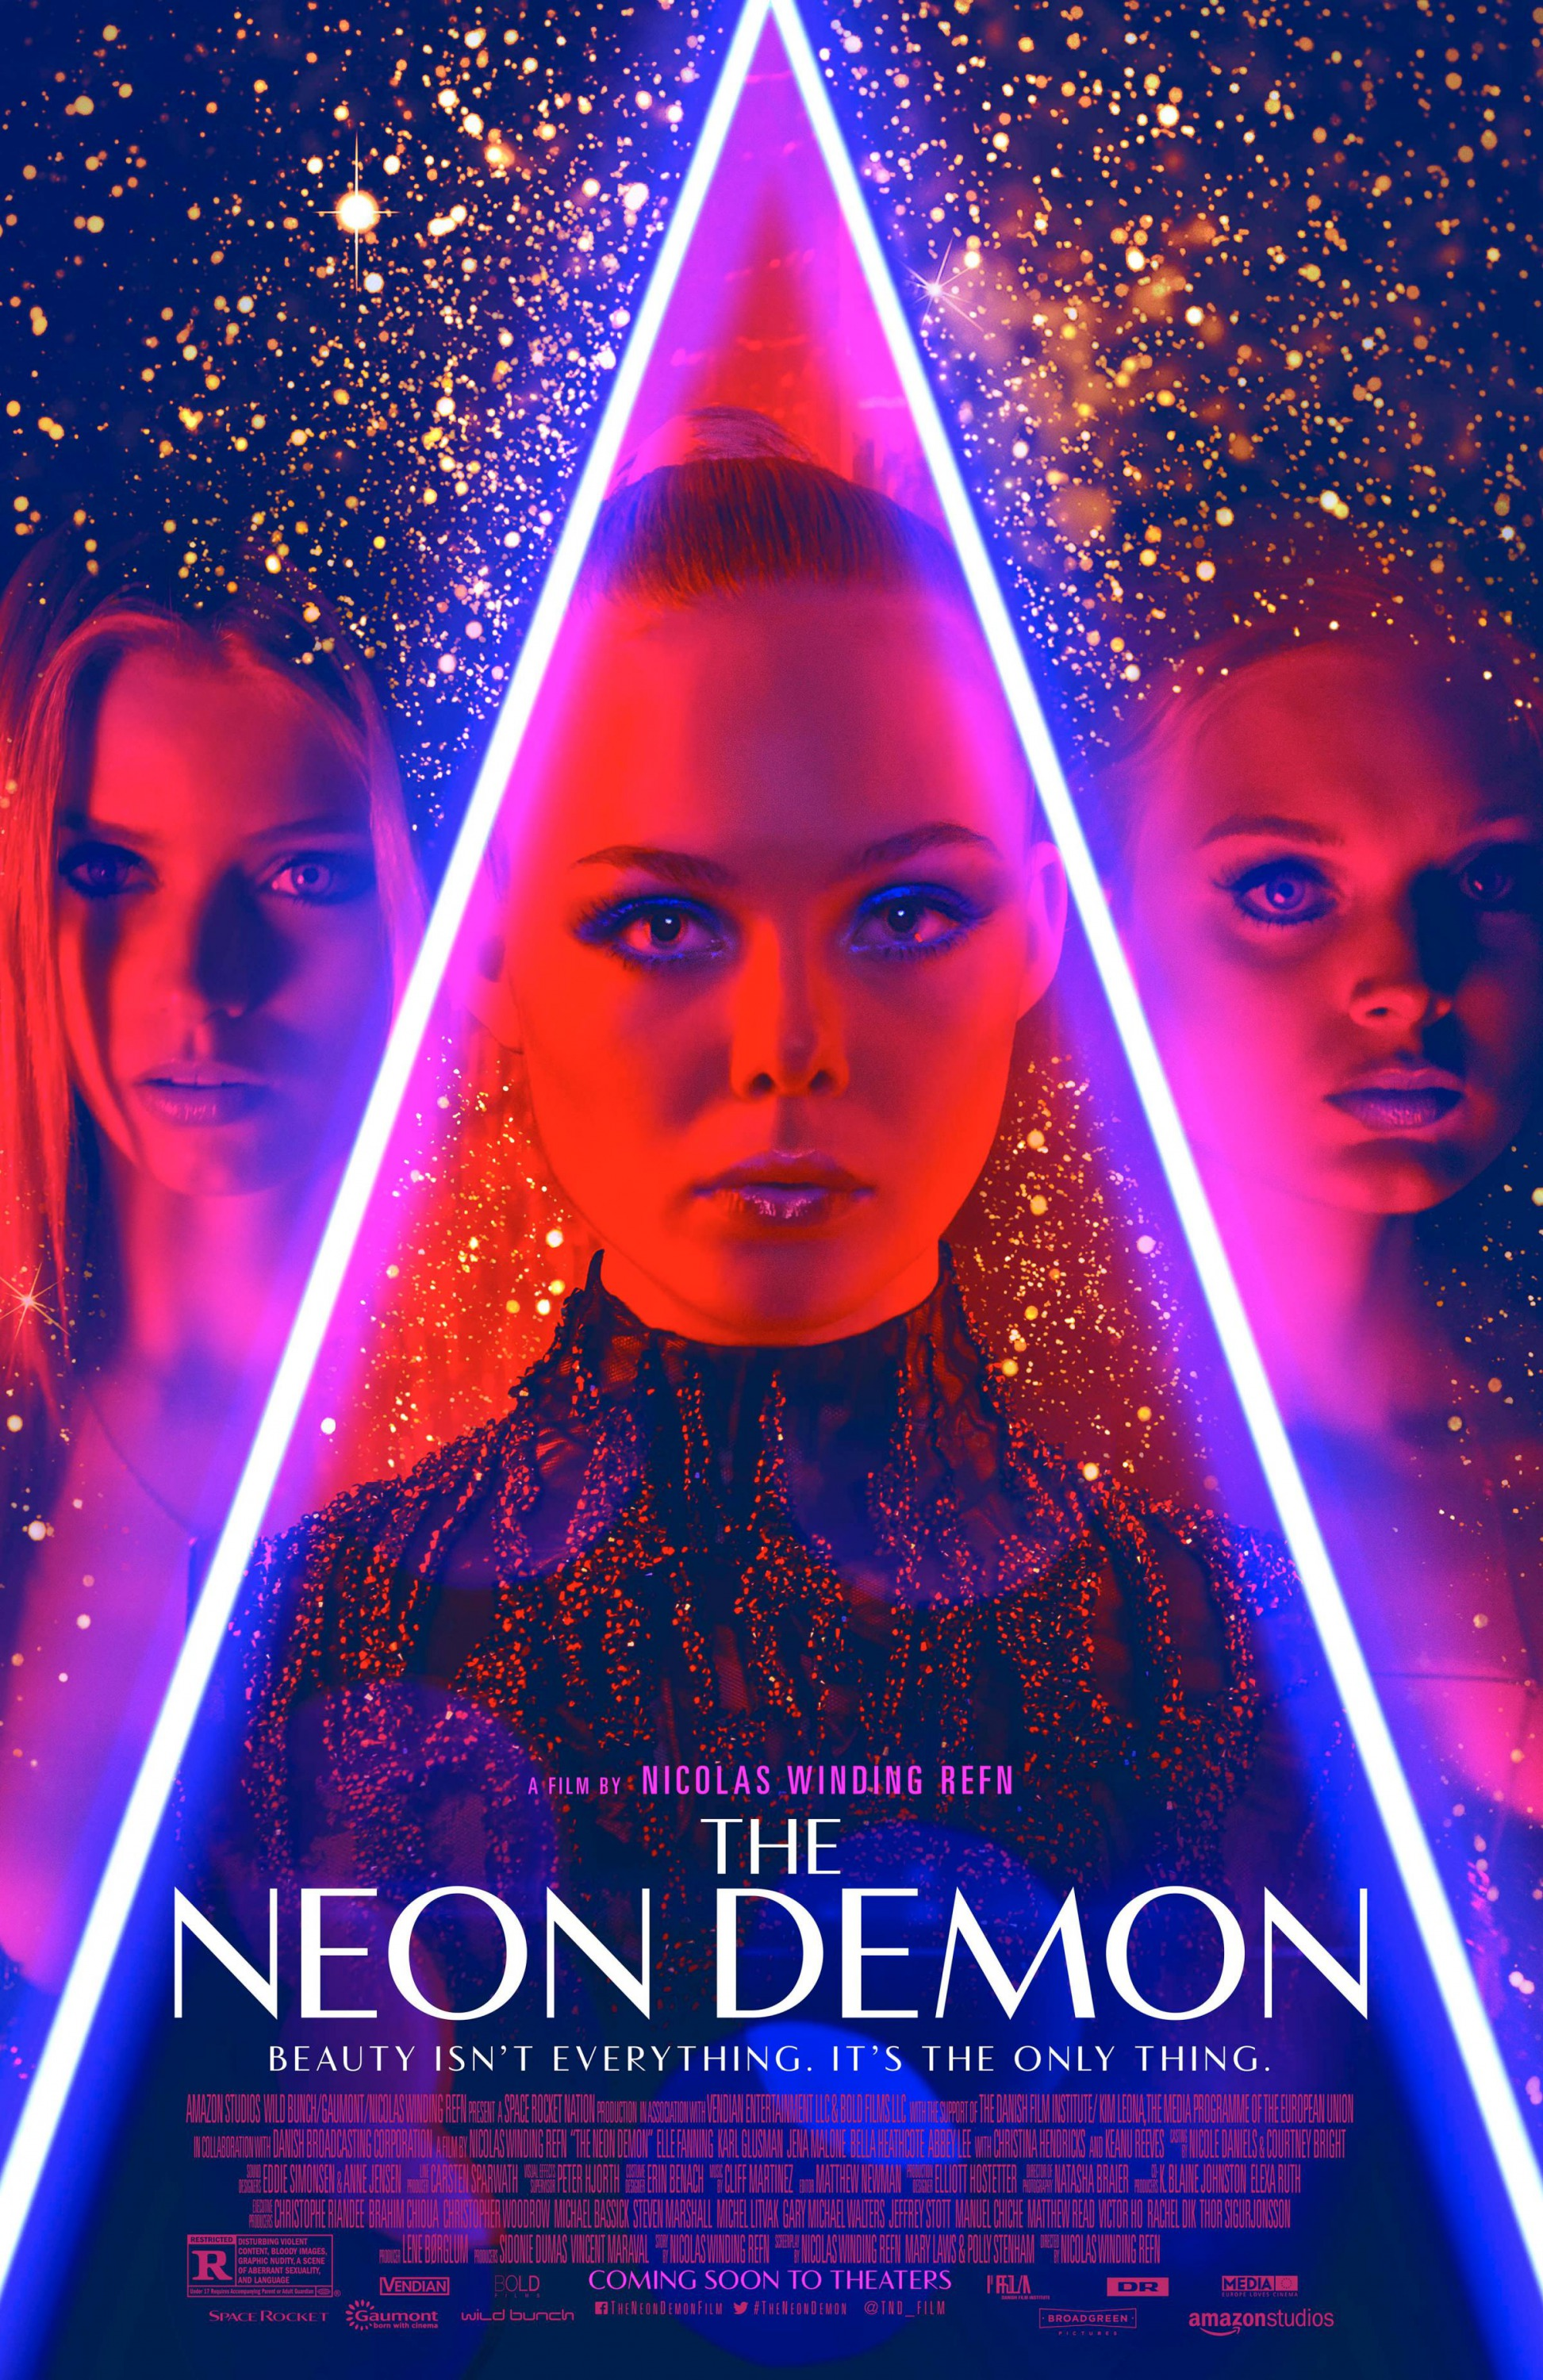 Image result for the neon demon movie poster